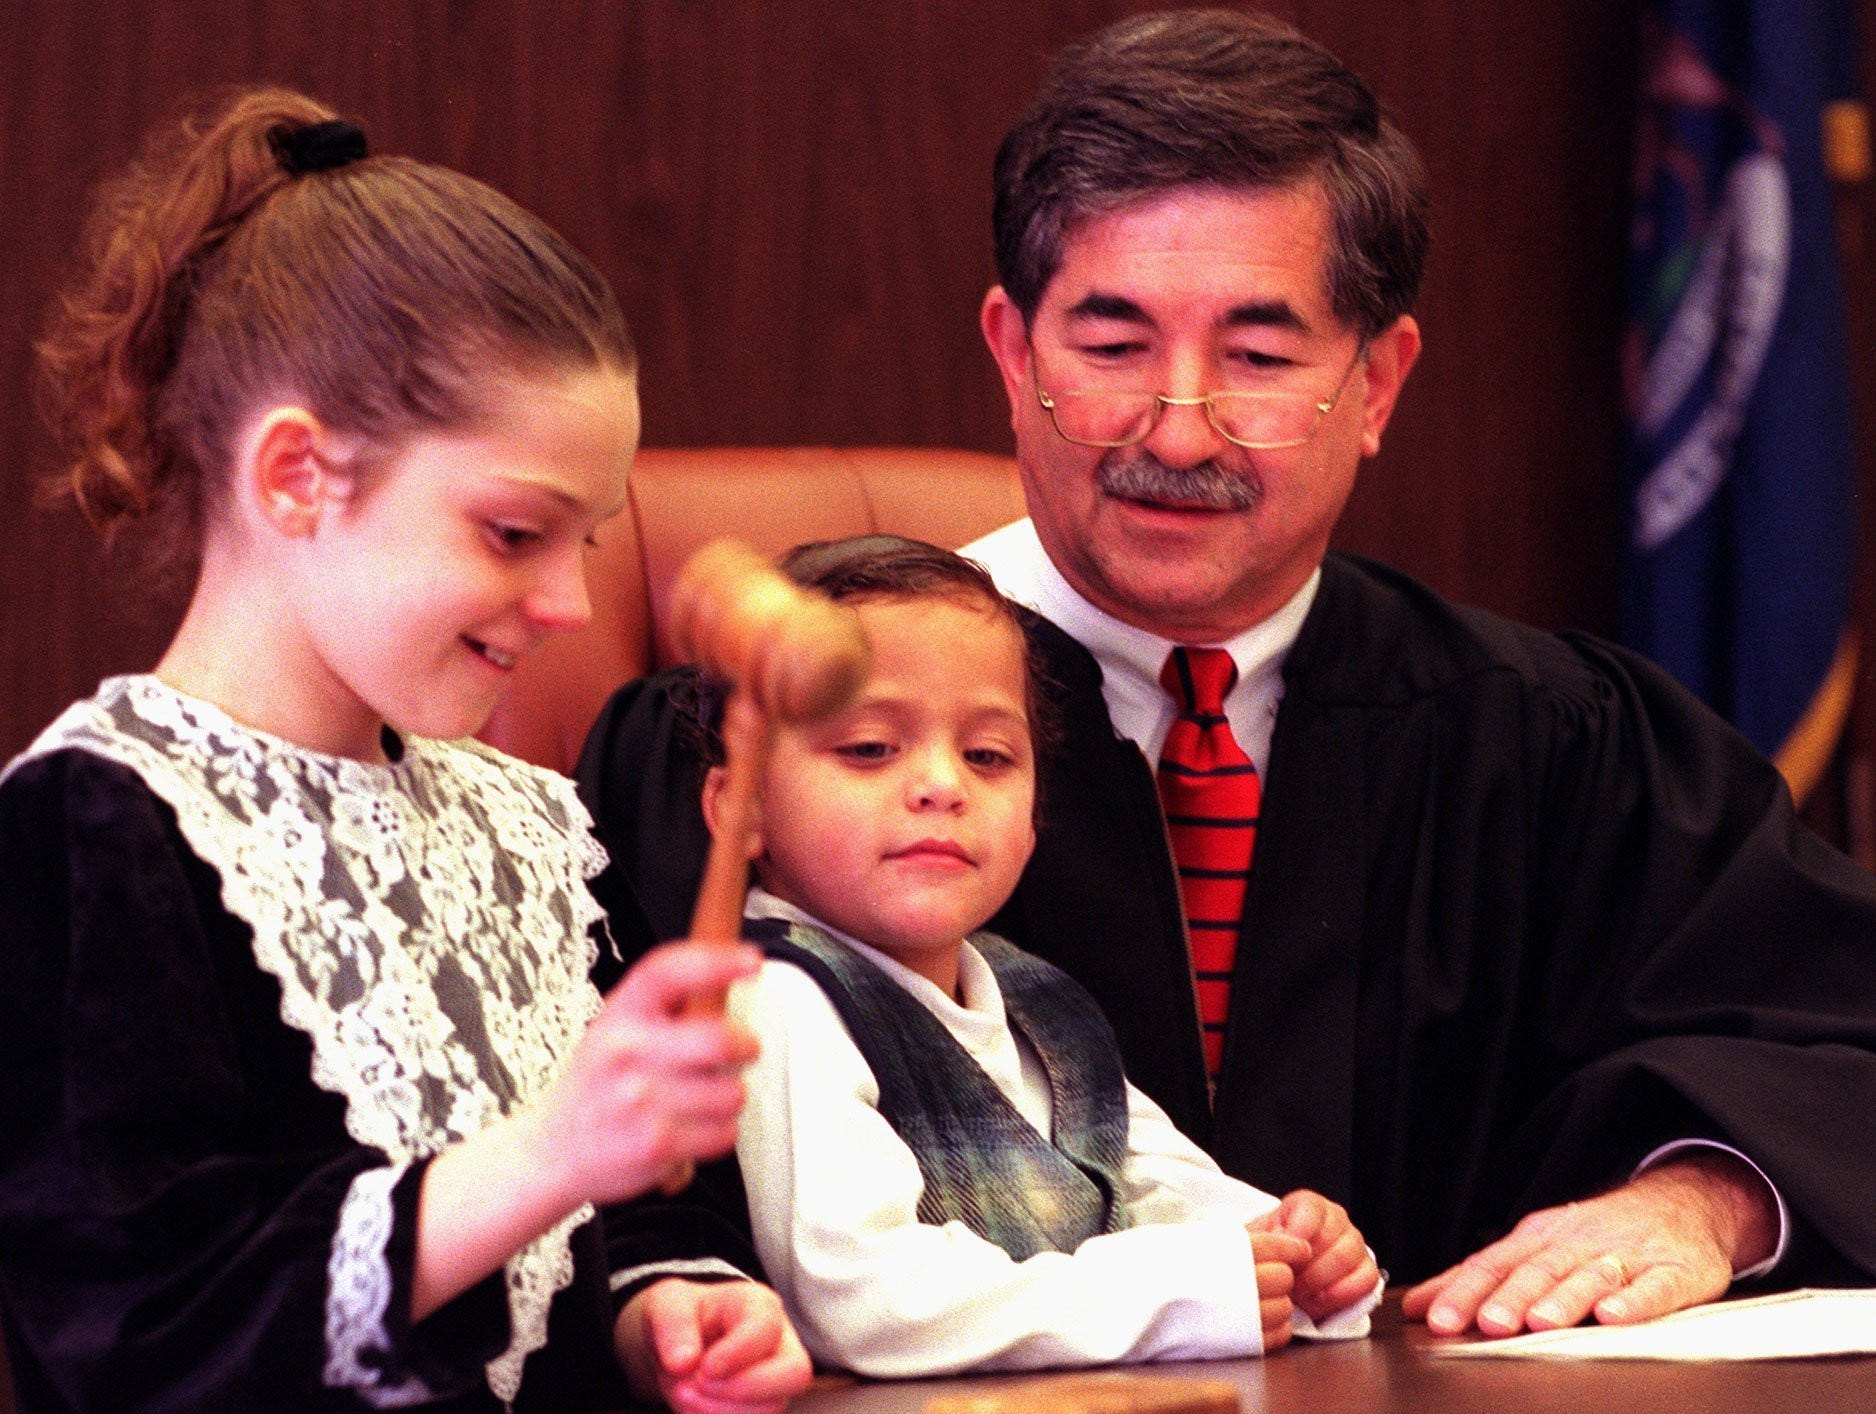 Ashley Keys, 10,  pounds the gavel to finalize adoption proceedings for herself and now official brother Marcus Keys, 3, center, in Judge George Economy's, right, courtroom Dec. 23, 1997. Ashley and Marcus were officially adopted by their mom Christina's husband Zettie Keys in the proceedings.